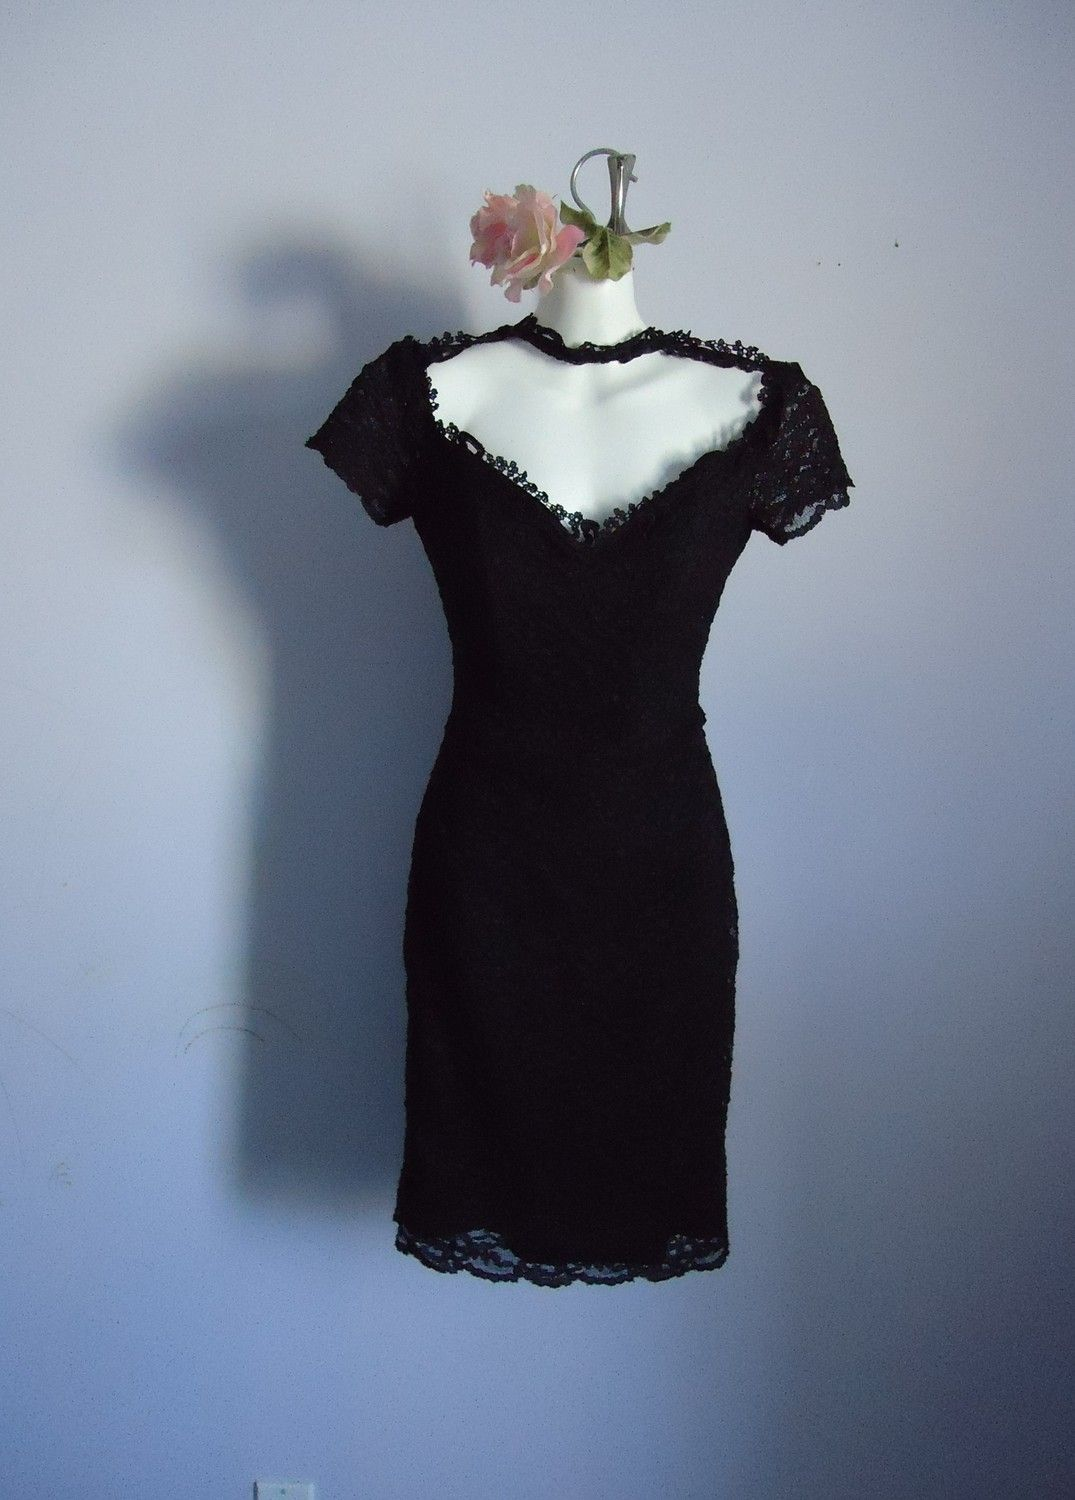 Vintage Black Lace Cocktail Dress Julia Roberts Wore The